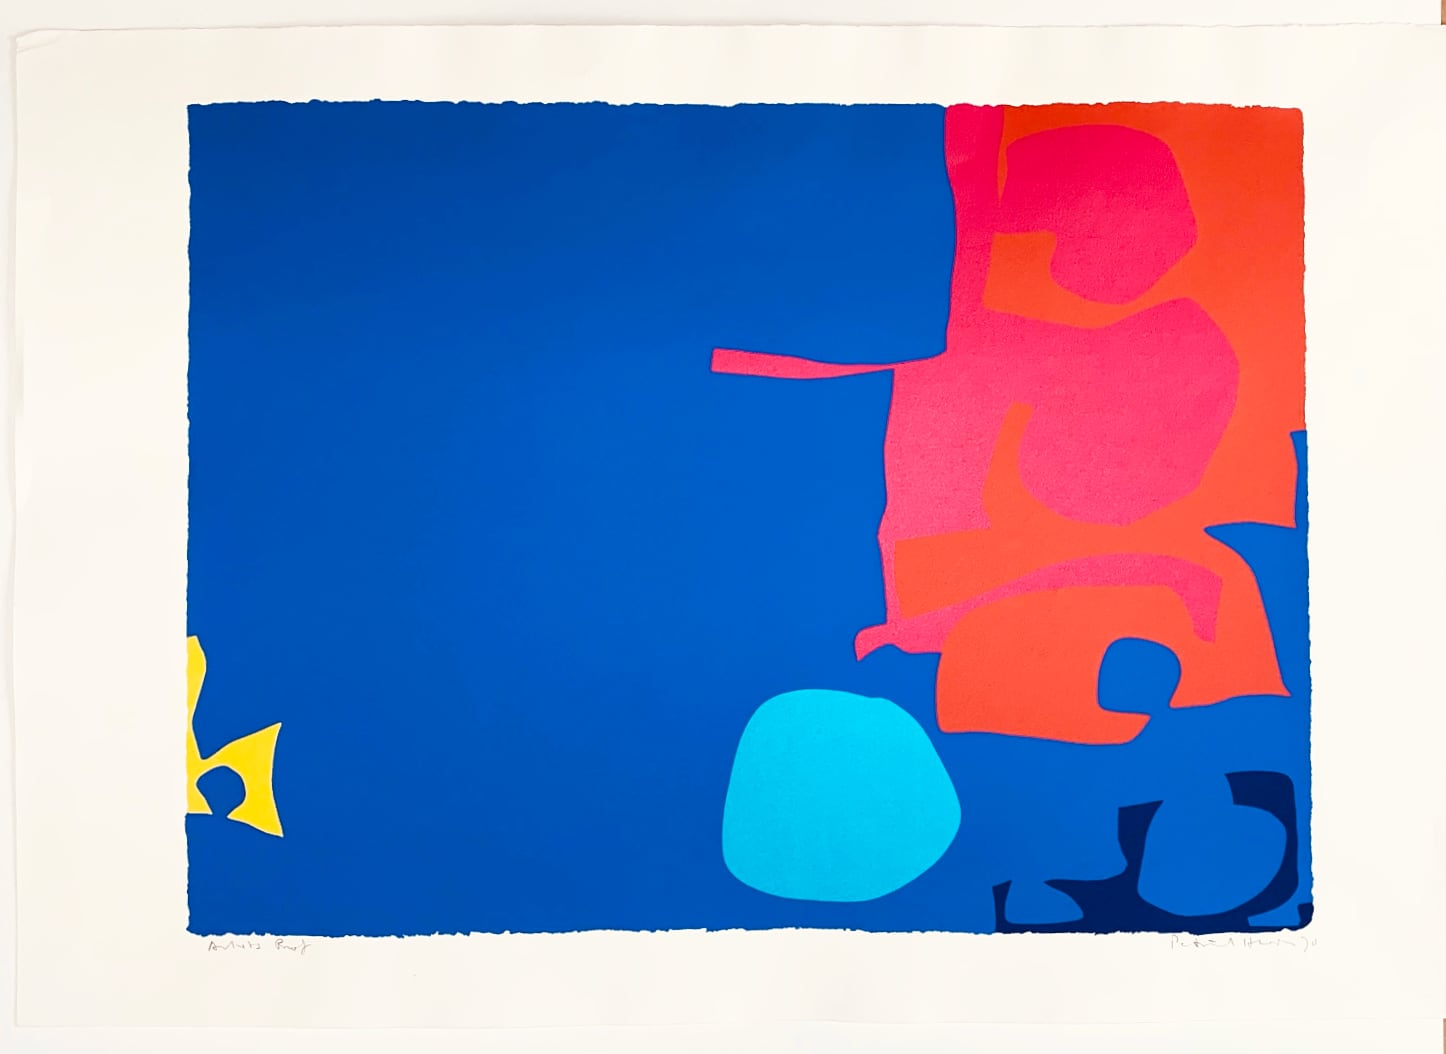 Patrick Heron -  Interlocking Pink and Vermilion with Blue: April 1970